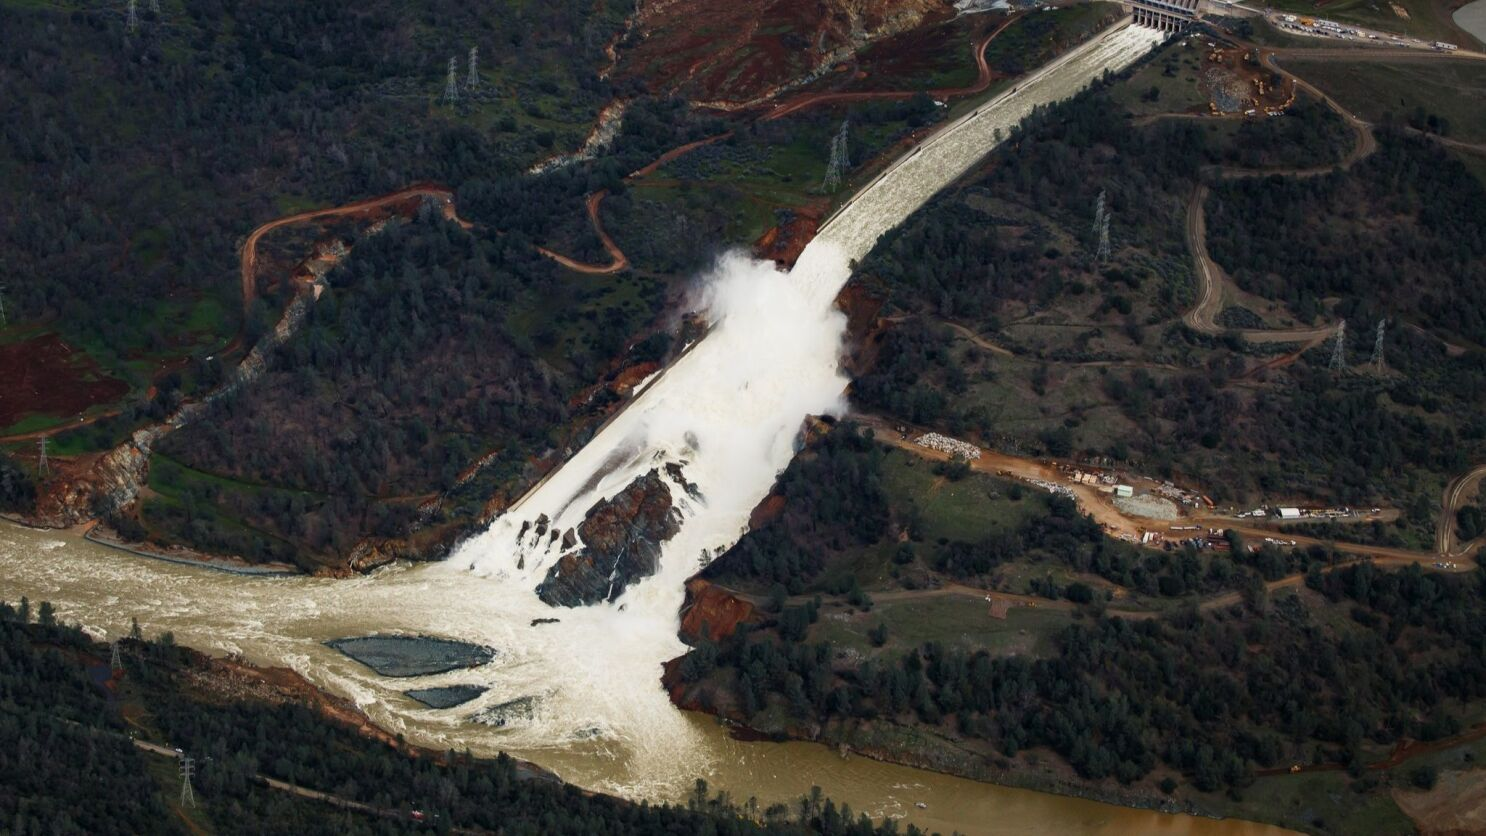 After near-disaster, Oroville Dam spillway about to face its first